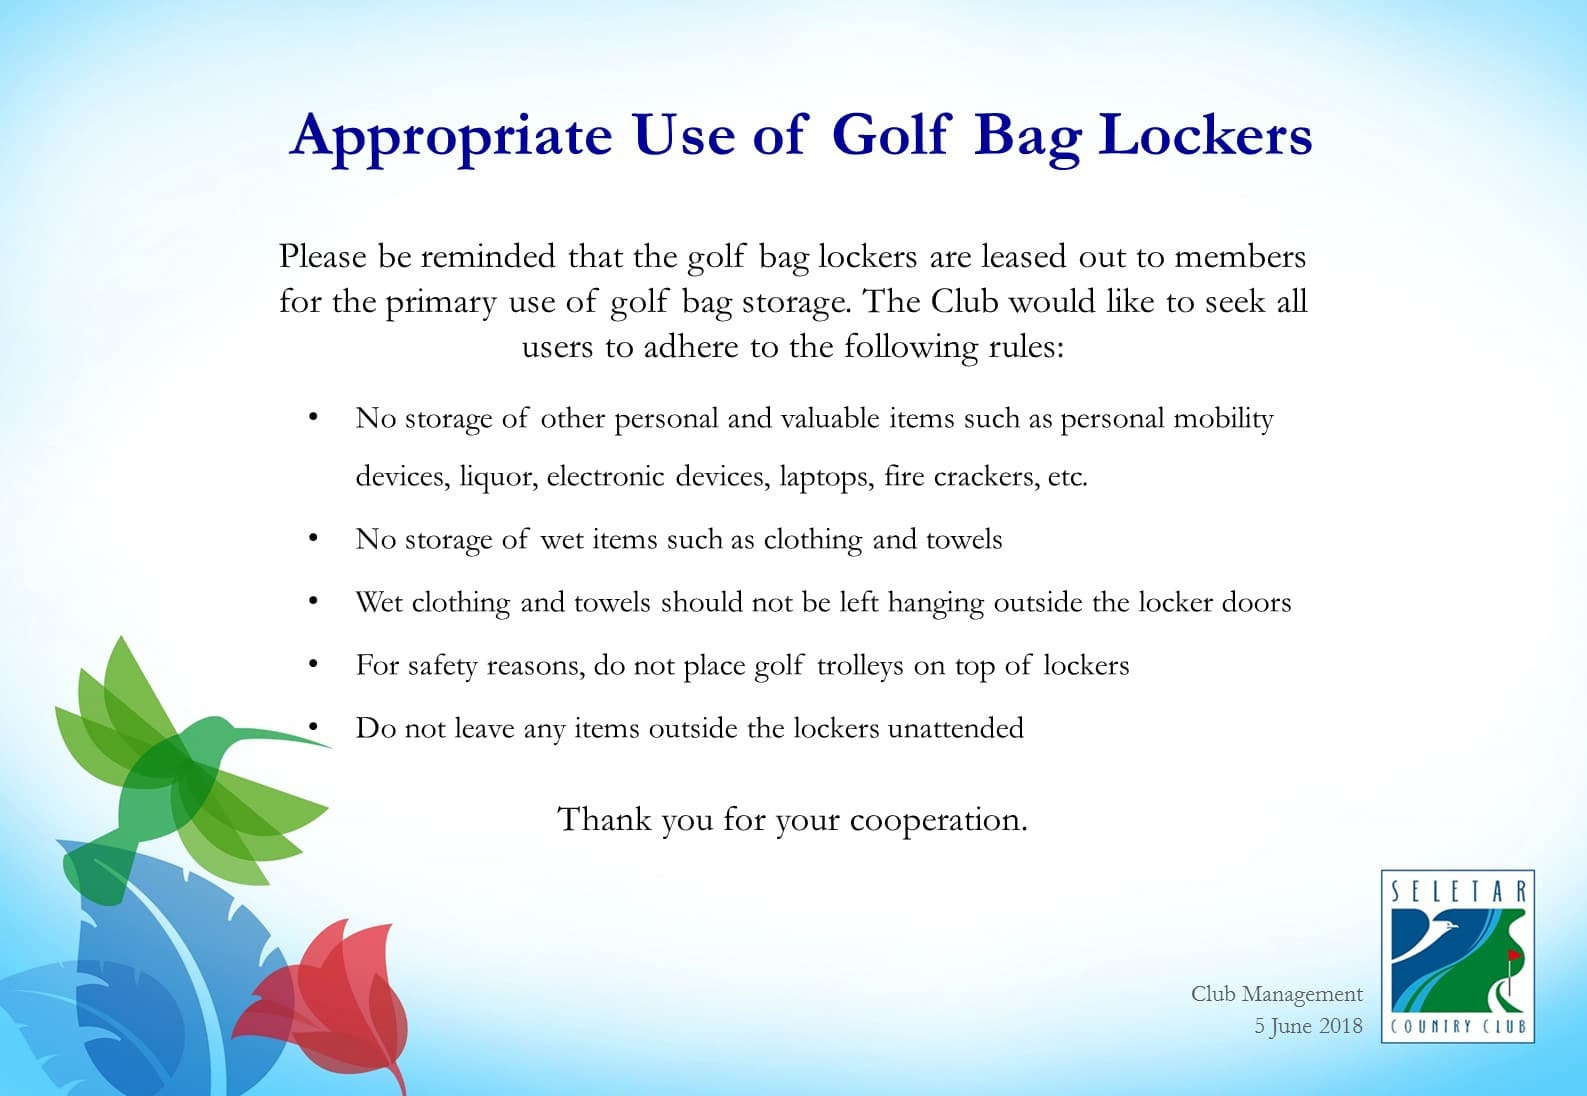 Appropriate use of Golf bag lockers